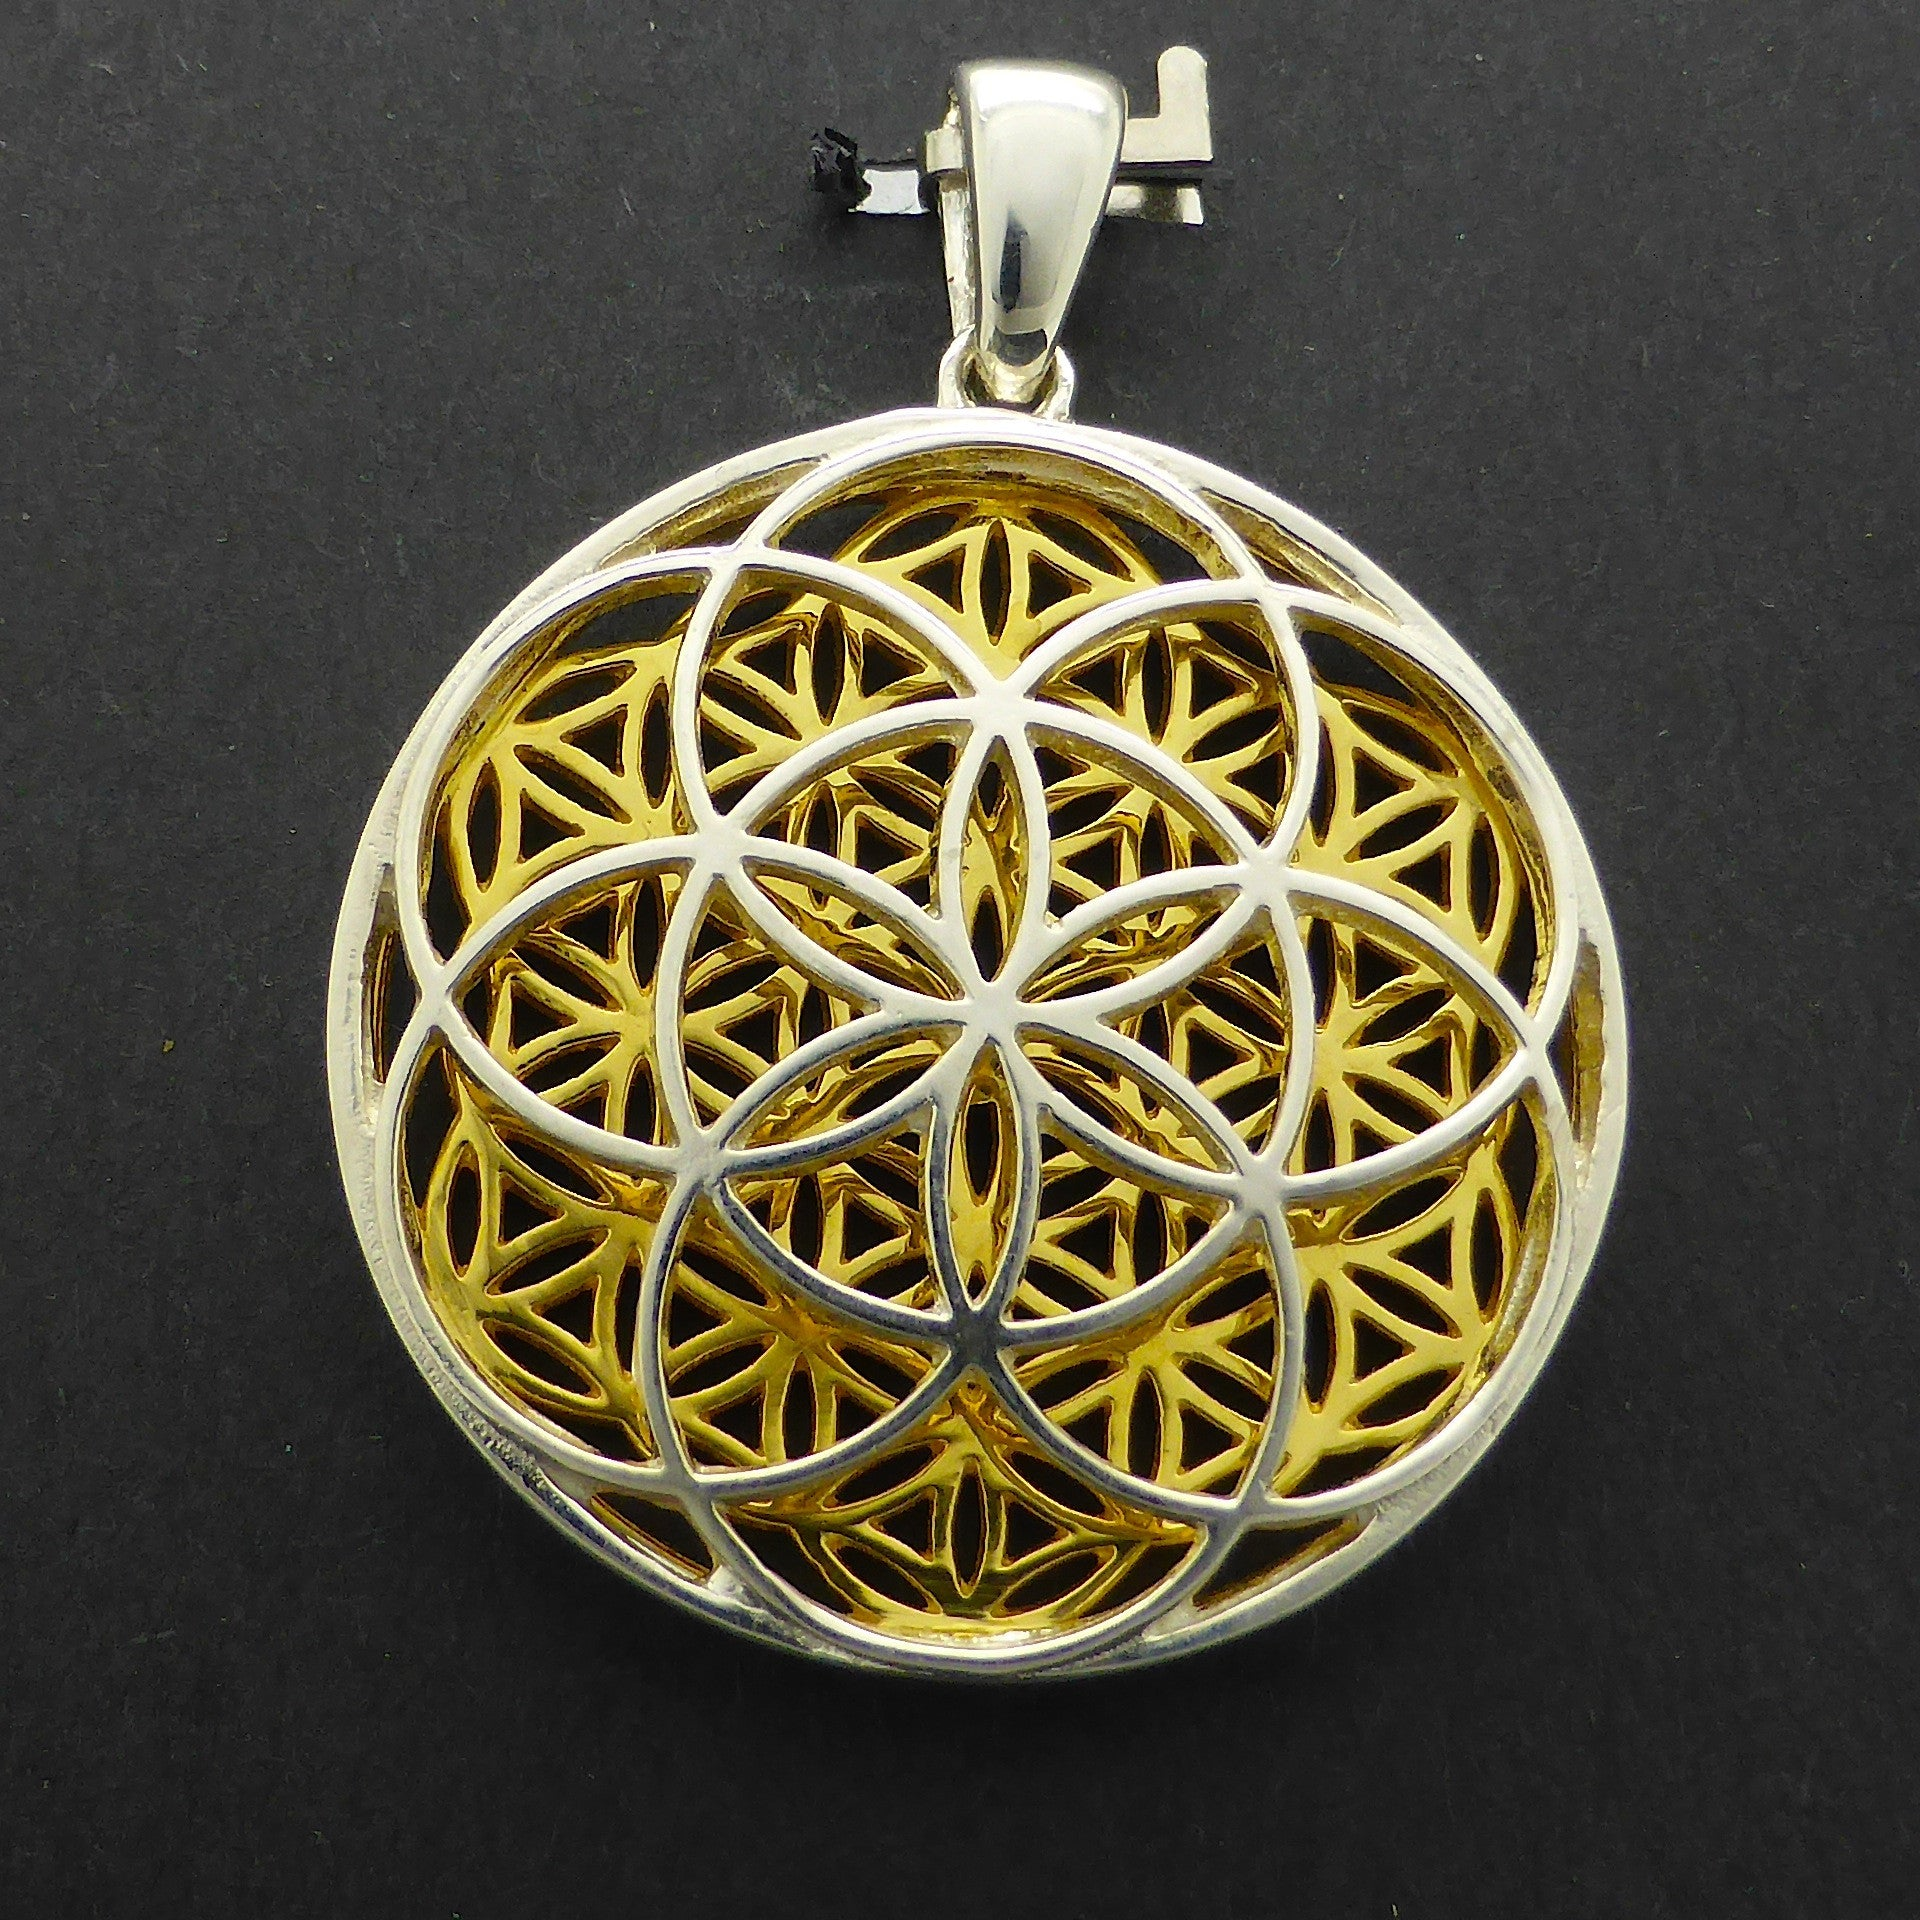 Pendant flower seed of life 925 silver gold crystal heart flower and seed of life combined pendant 925 sterling silver gold plate harmonise mozeypictures Gallery